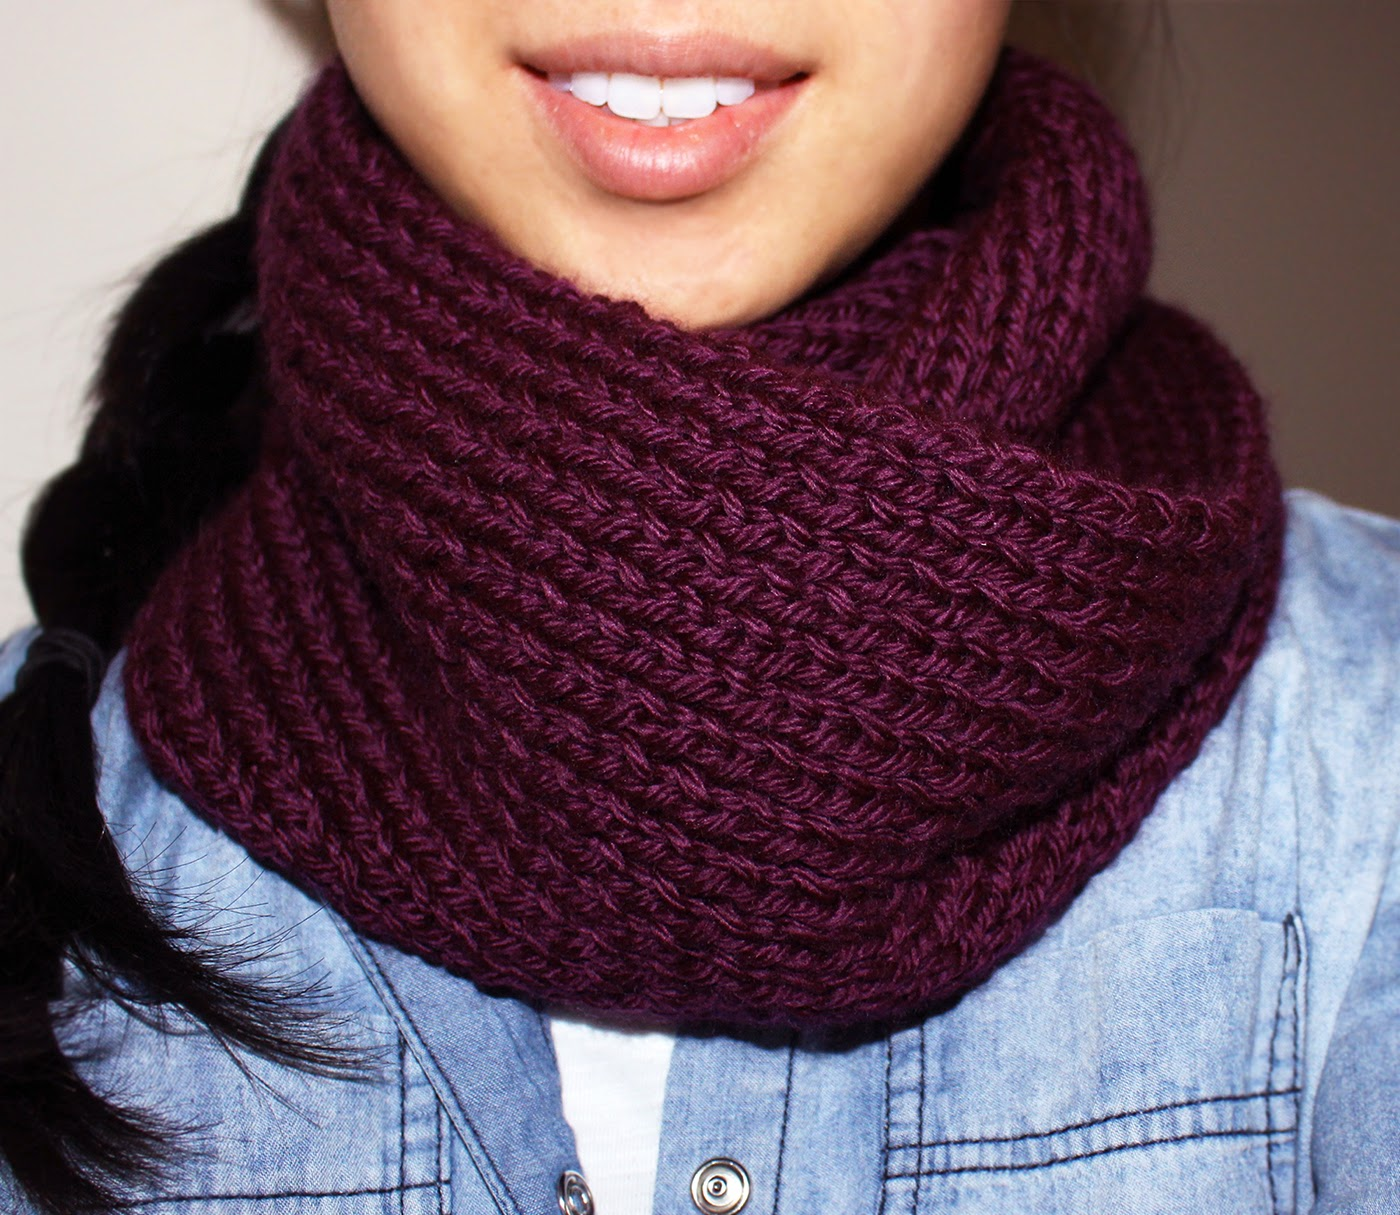 Good Knitting Stitches For Scarves : Purllin: Acai Infinity Circle Scarf [free knitting pattern]